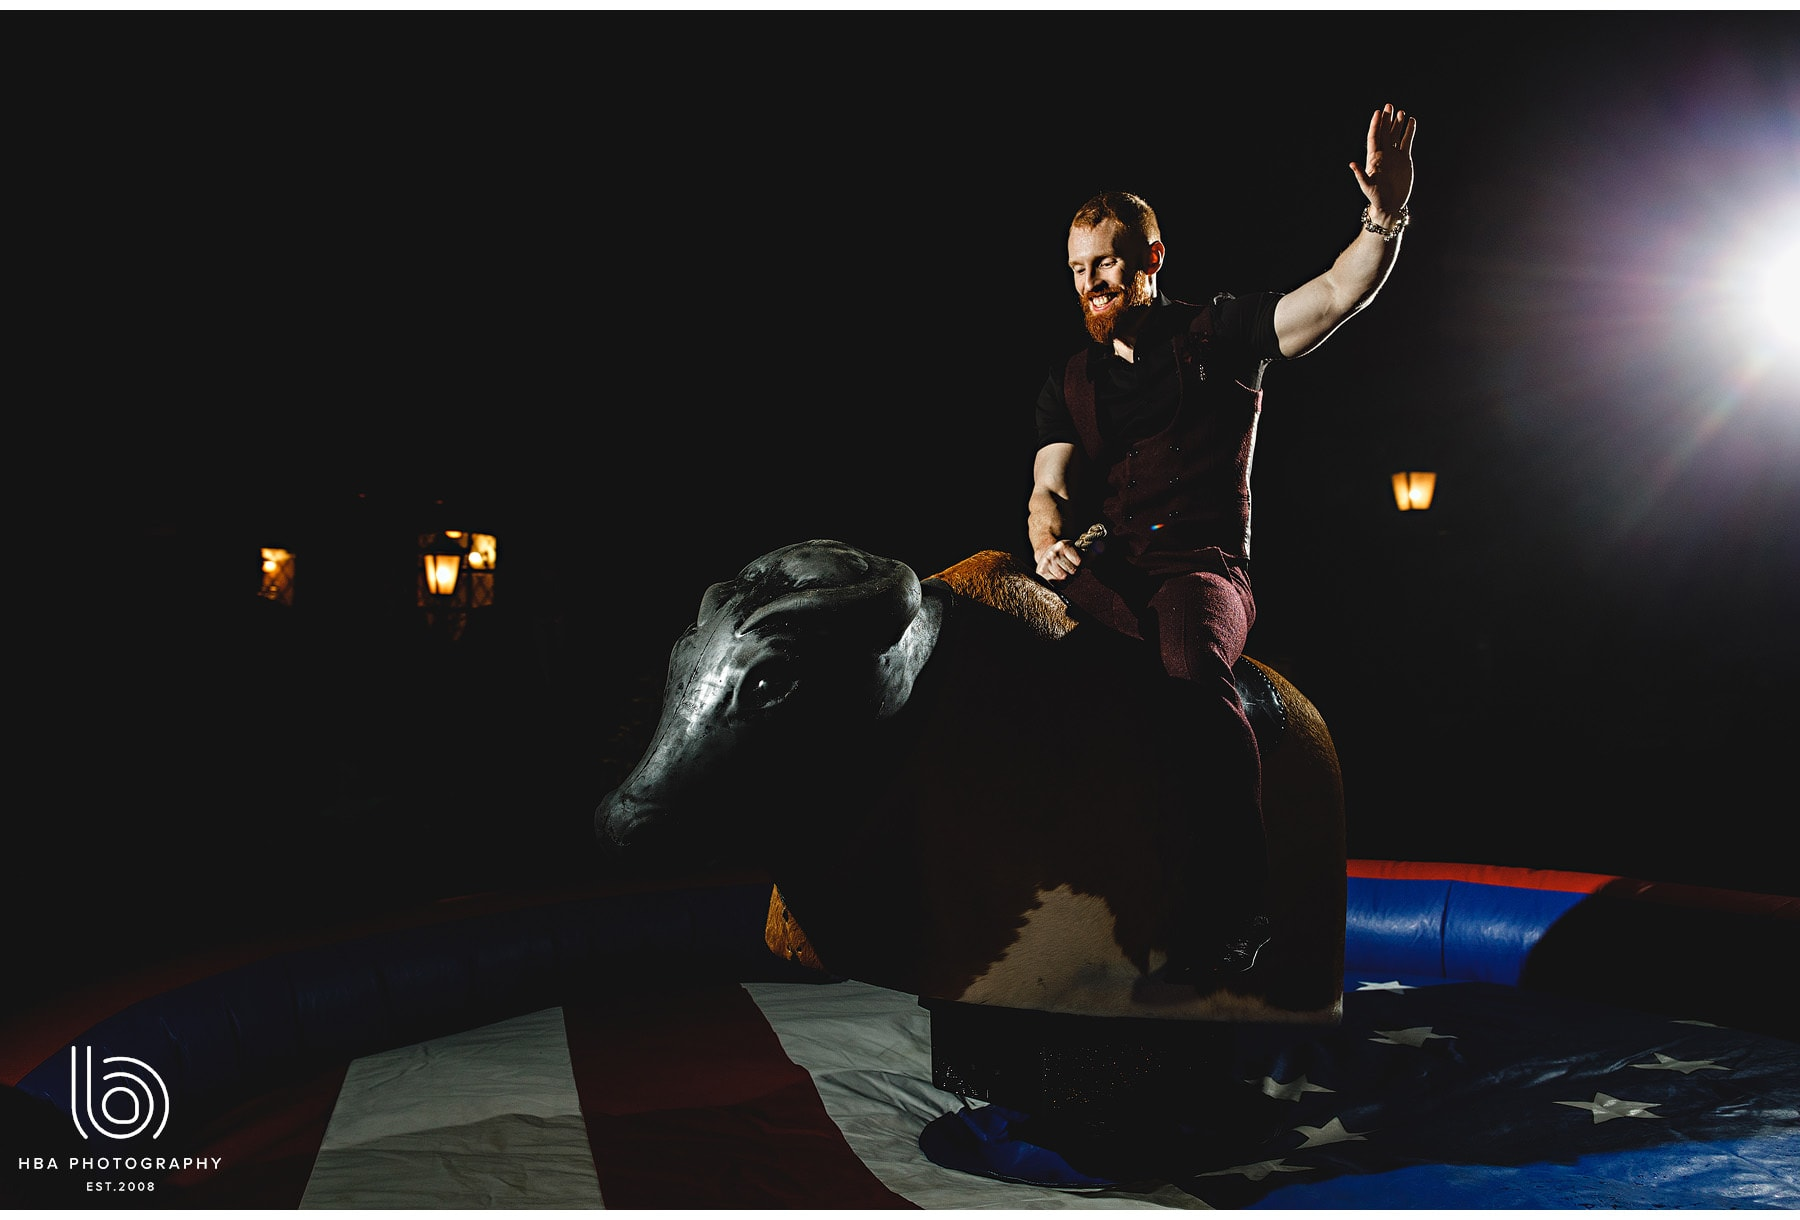 the groom on the rodeo bull